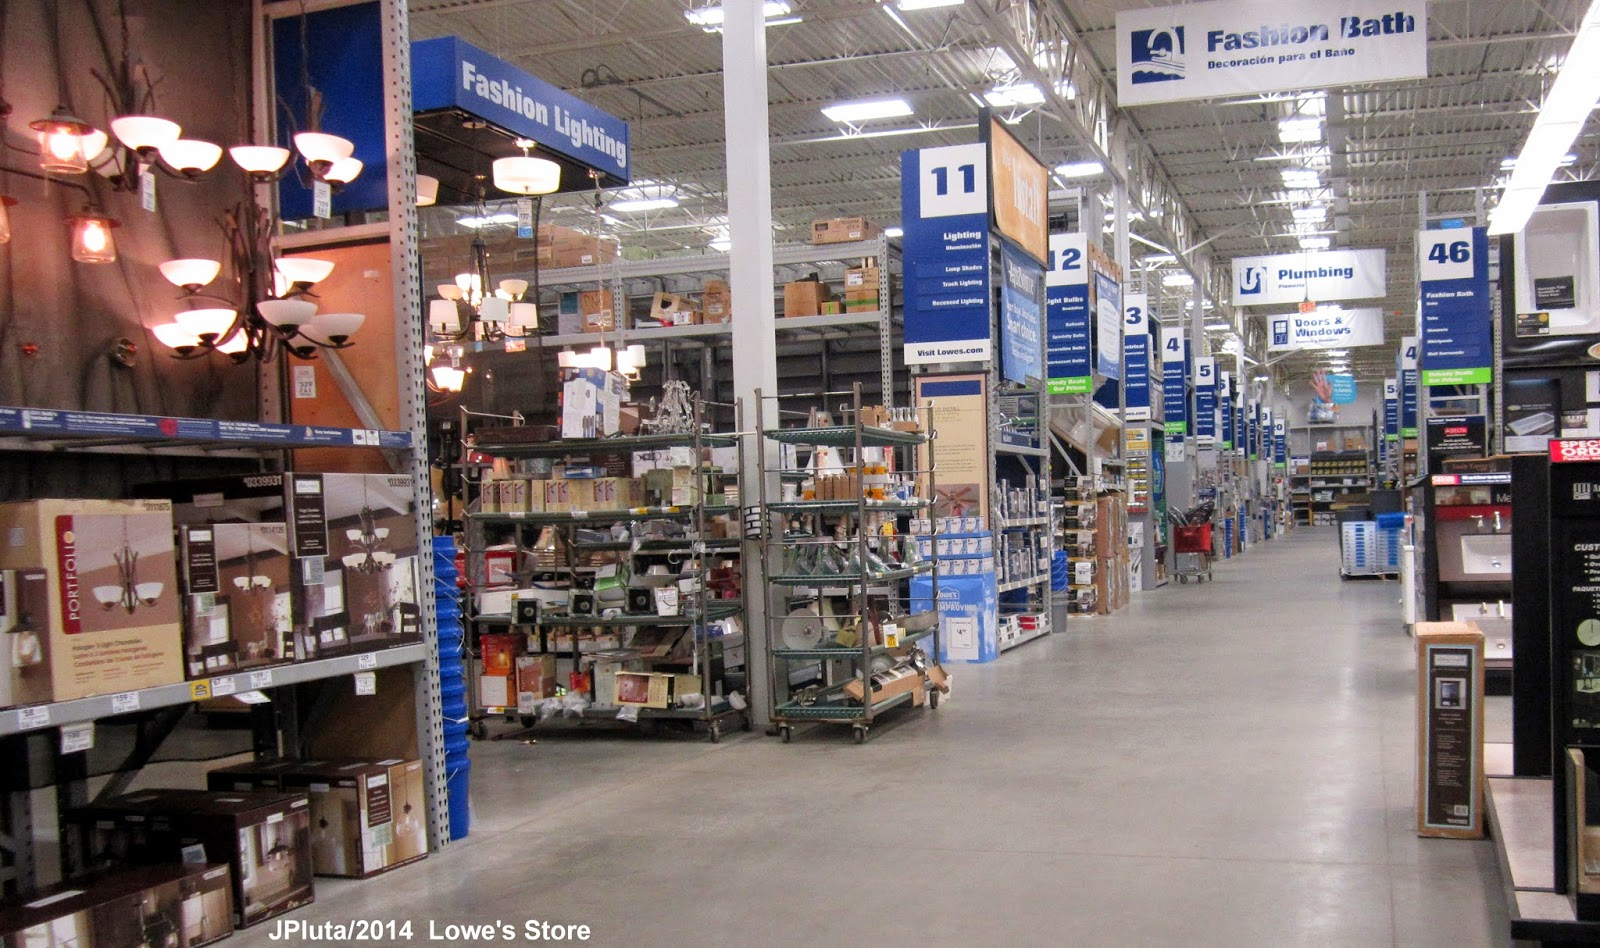 10% Lowes Coupon With Sign Up In Store: Enjoy a 10% off your next in-store purchase when you sign up to receive Lowe's for Pros adalatblog.ml valid for new accounts only. Coupon is single use, can't be used in conjunction with any other offer or discount.